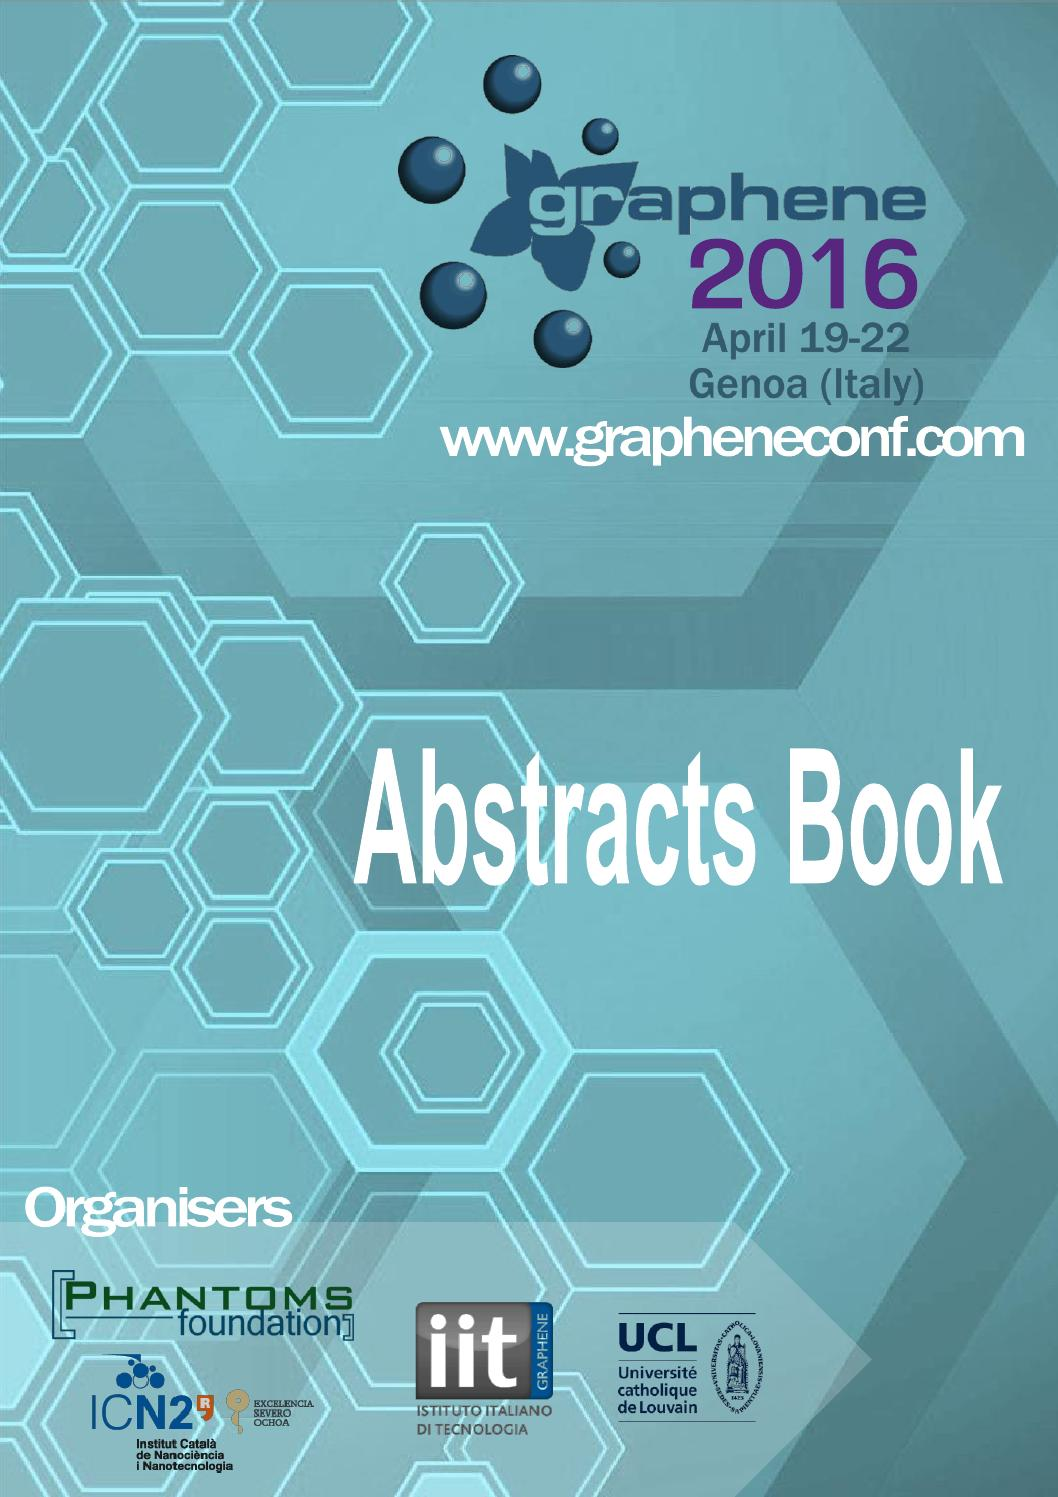 Graphene2016 abstracts book by Phantoms Foundation - issuu